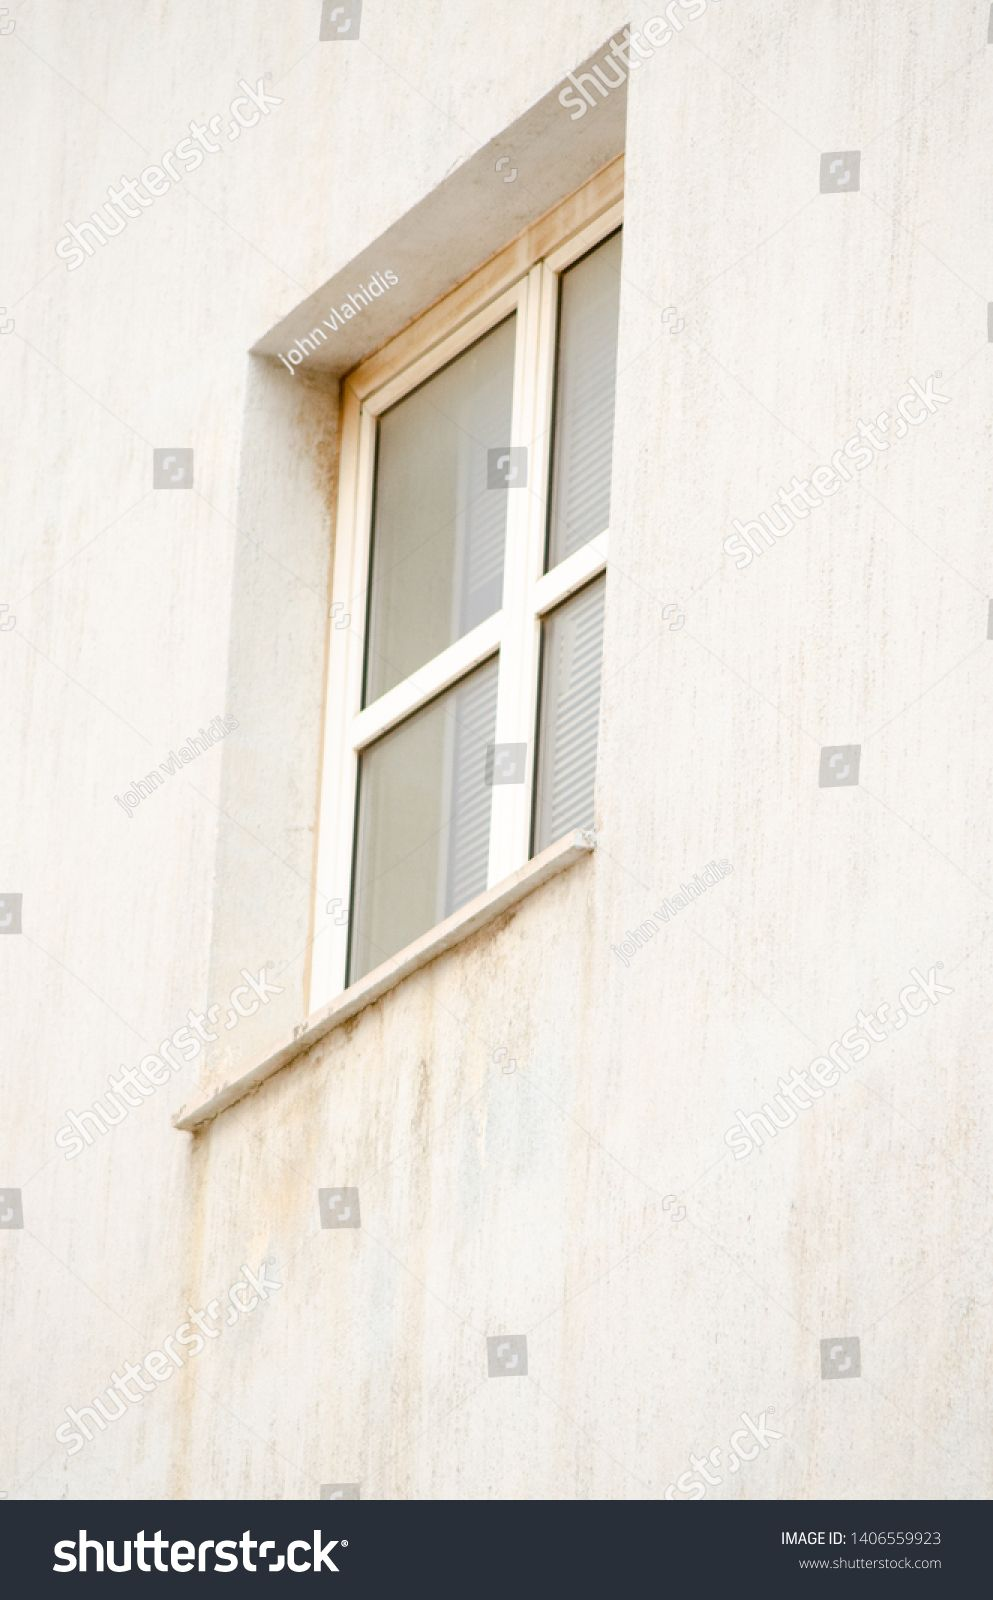 Unhealthy Mold Damaged Walls Outside Window House With Images